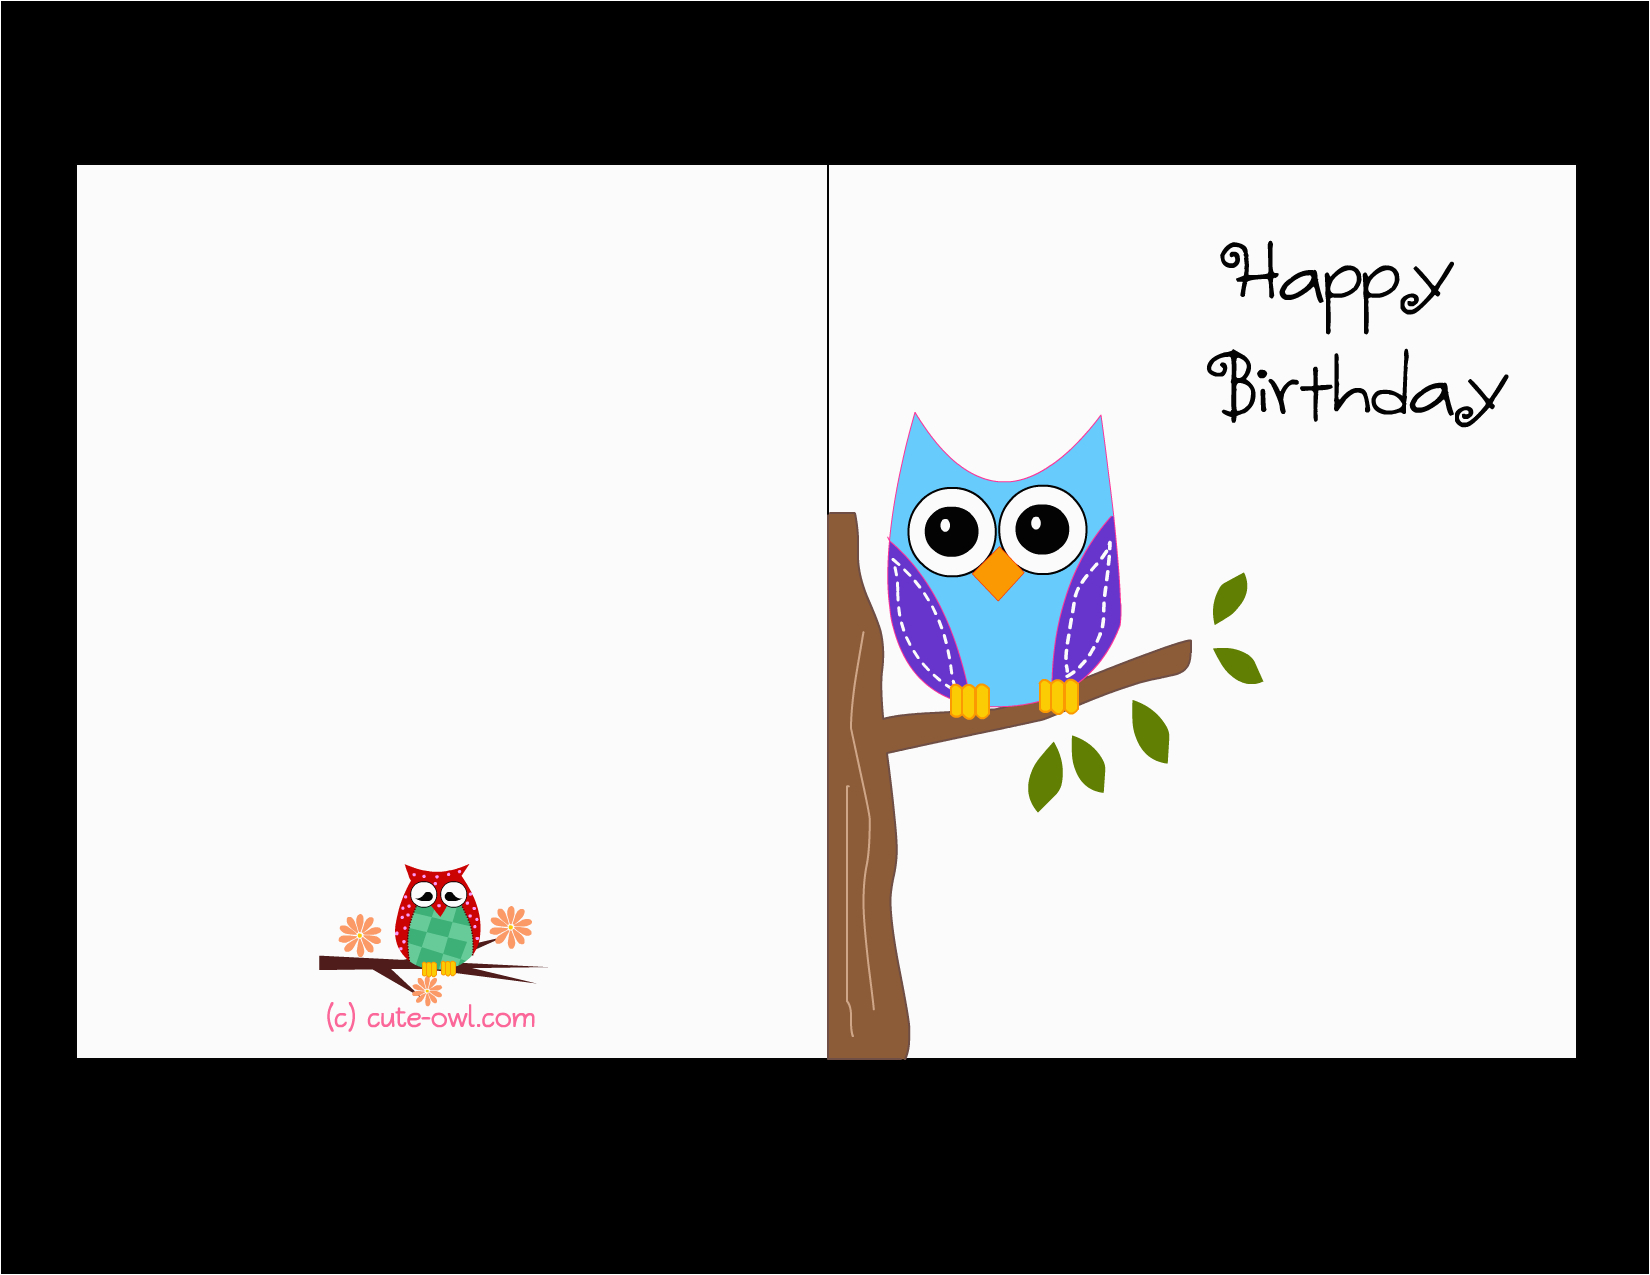 Free Printable Birthday Cards For Girls   Birthdaybuzz - Free Printable Birthday Cards For Boys